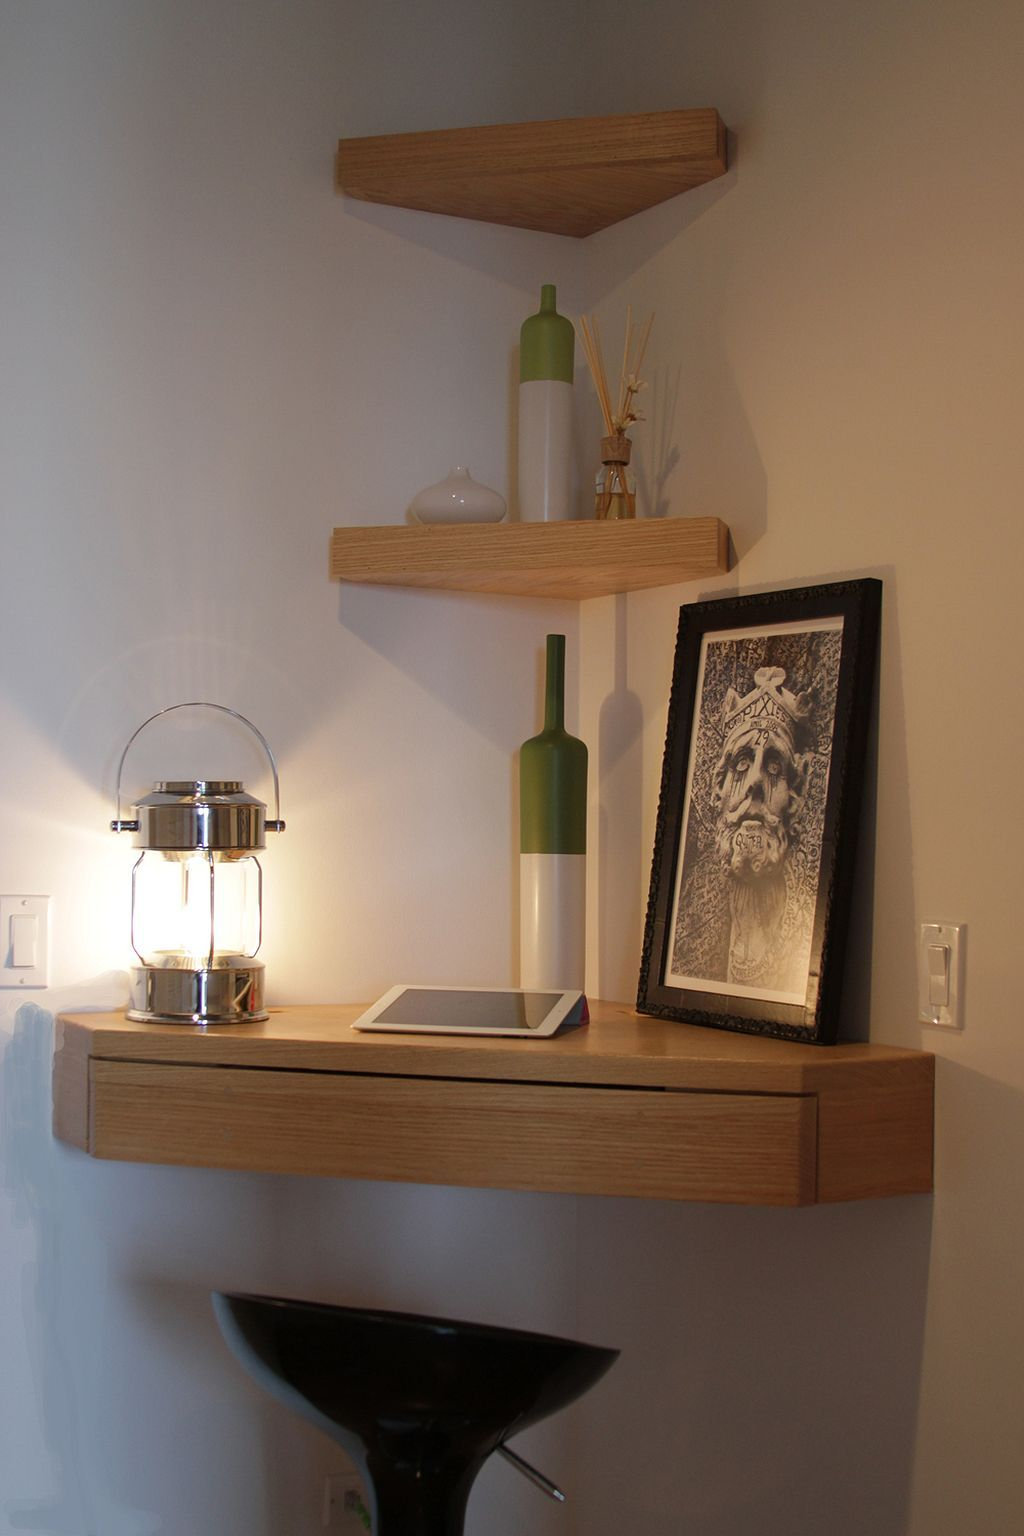 30 Best Floating Shelves For Small Space Ideas Floating Corner Shelves Diy Corner Shelf Floating Shelf With Drawer